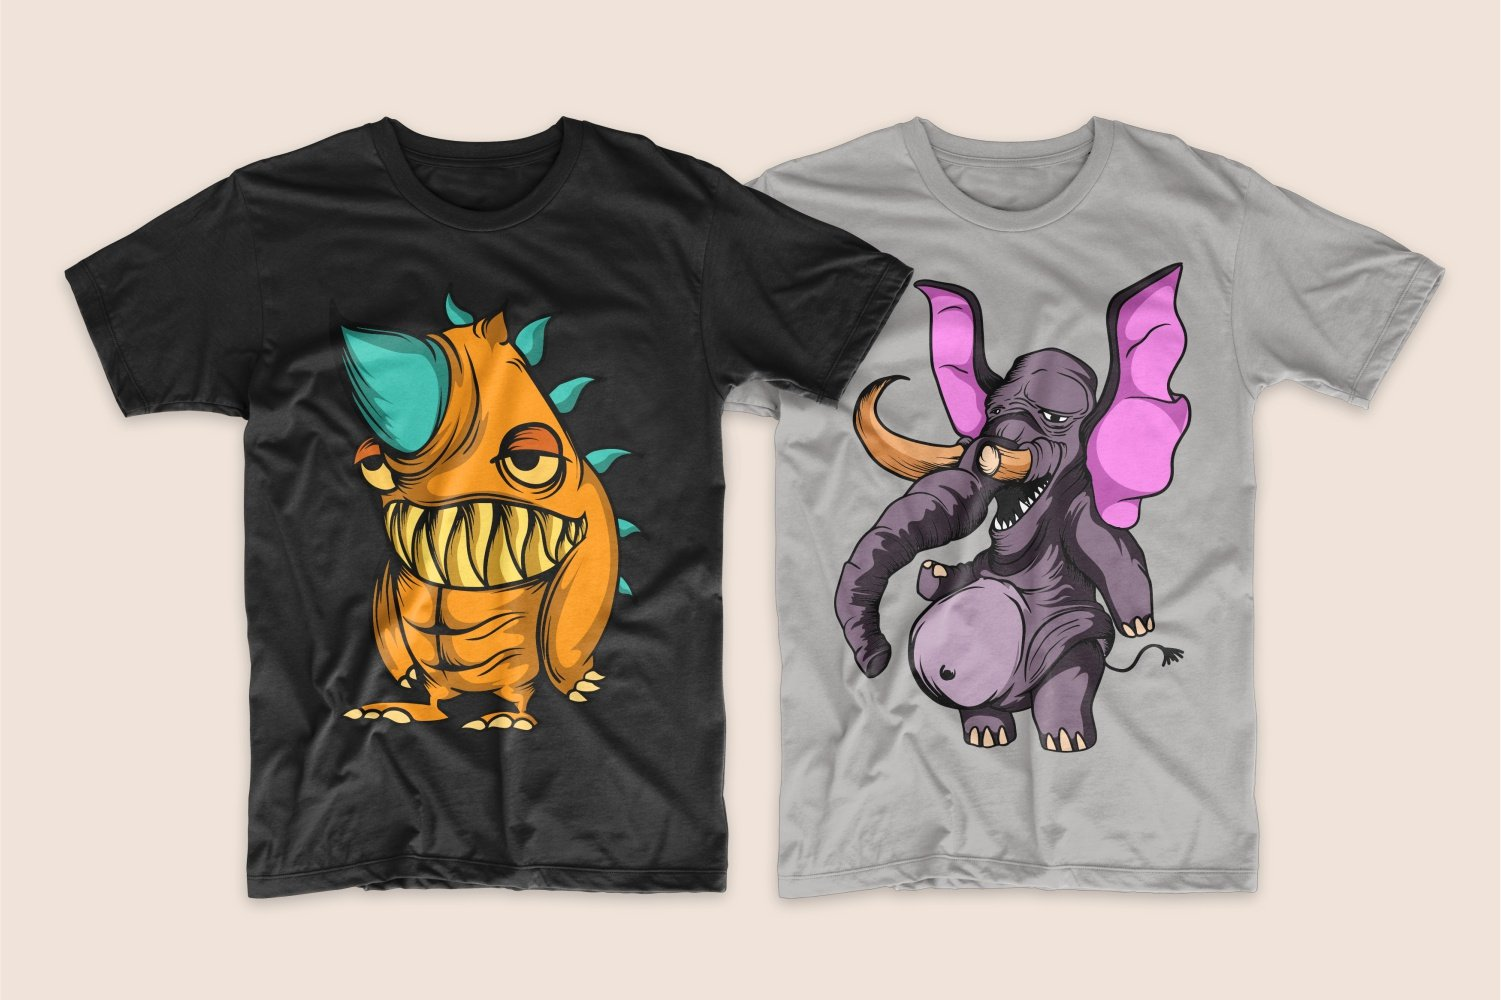 A black T-shirt with a ginger one-horned monster and a gray T-shirt with a purple elephant.